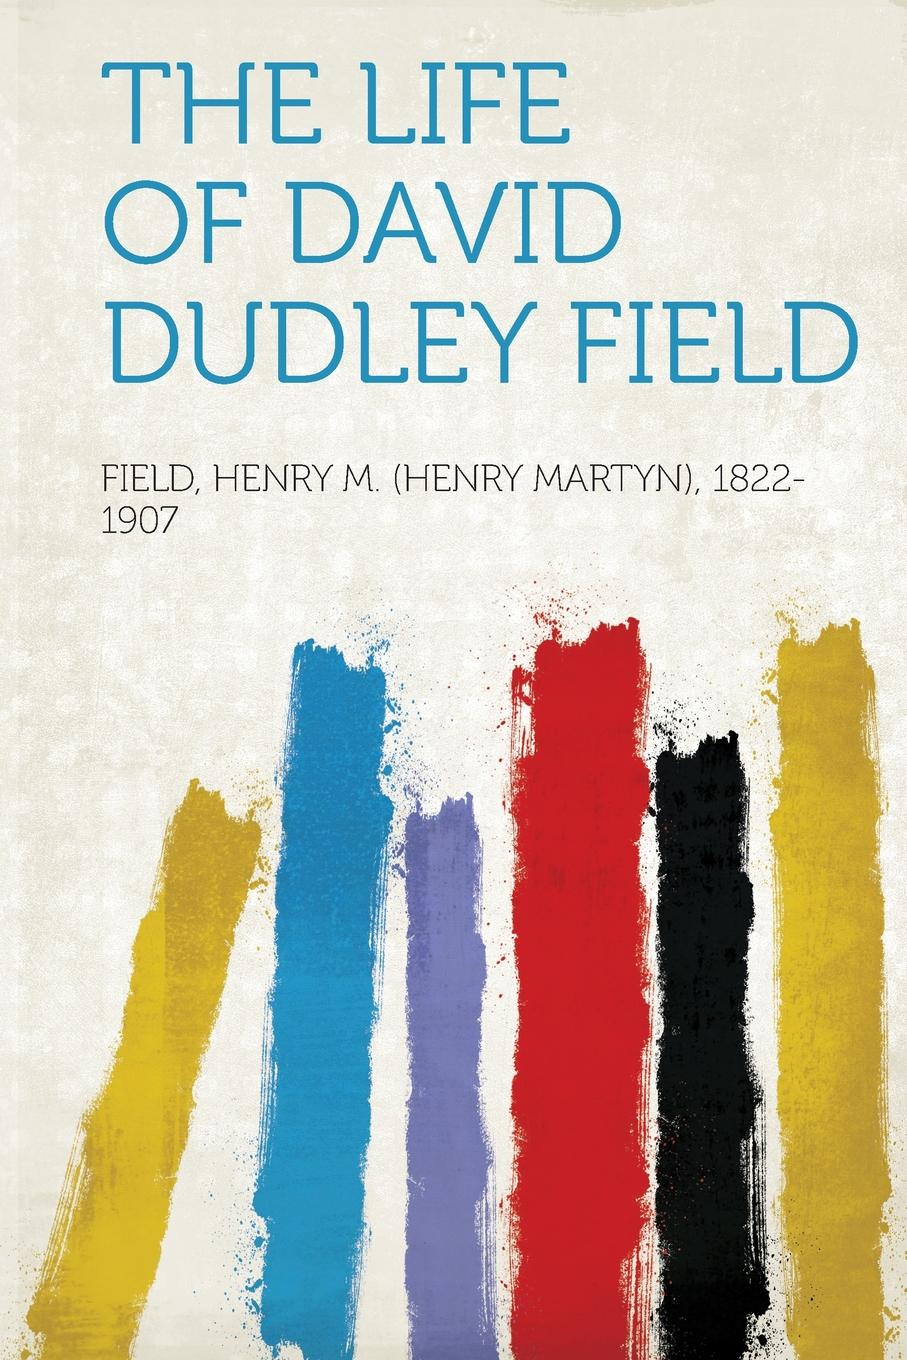 Field Henry M. (Henry Martyn 1822-1907 The Life of David Dudley Field field david dudley the vote that made the president